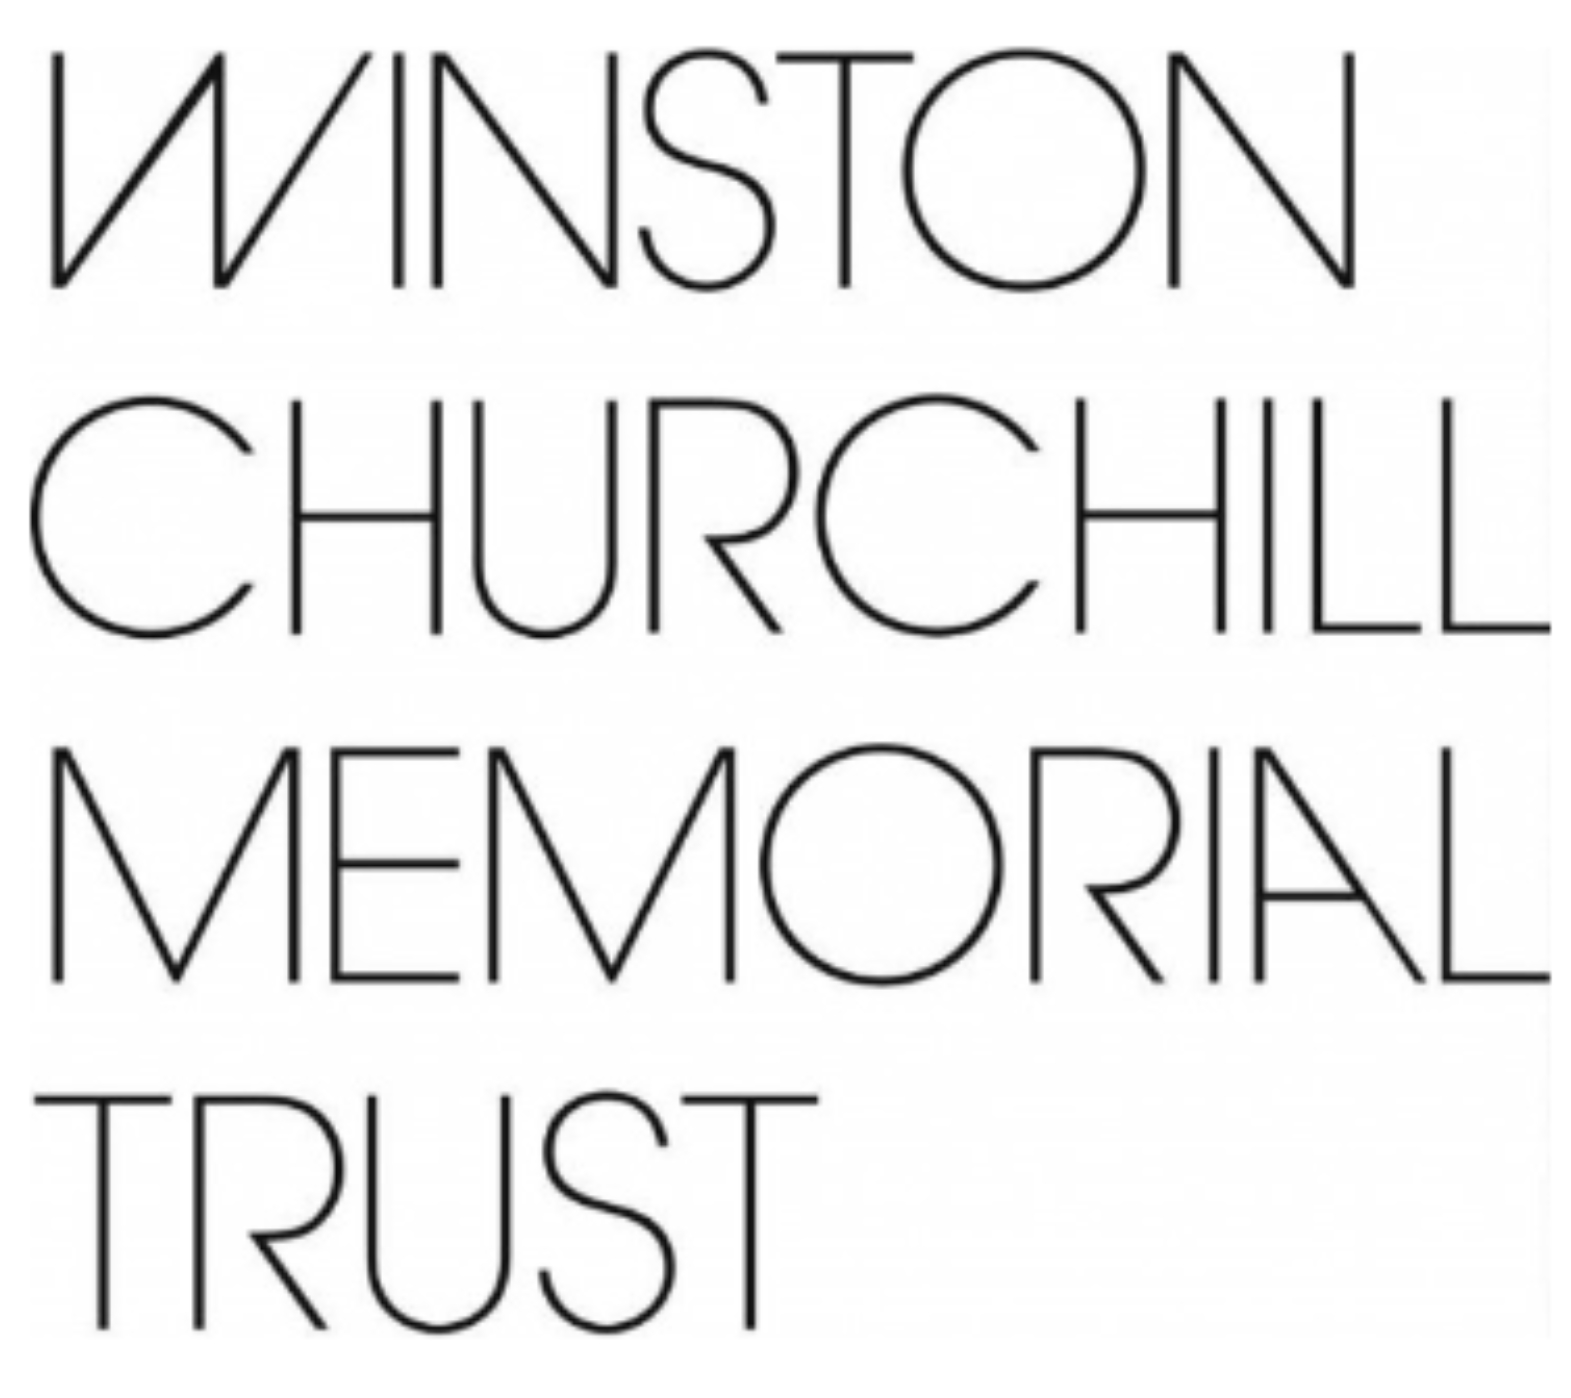 Winston Churchill Memorial Trust logo white background black lettering